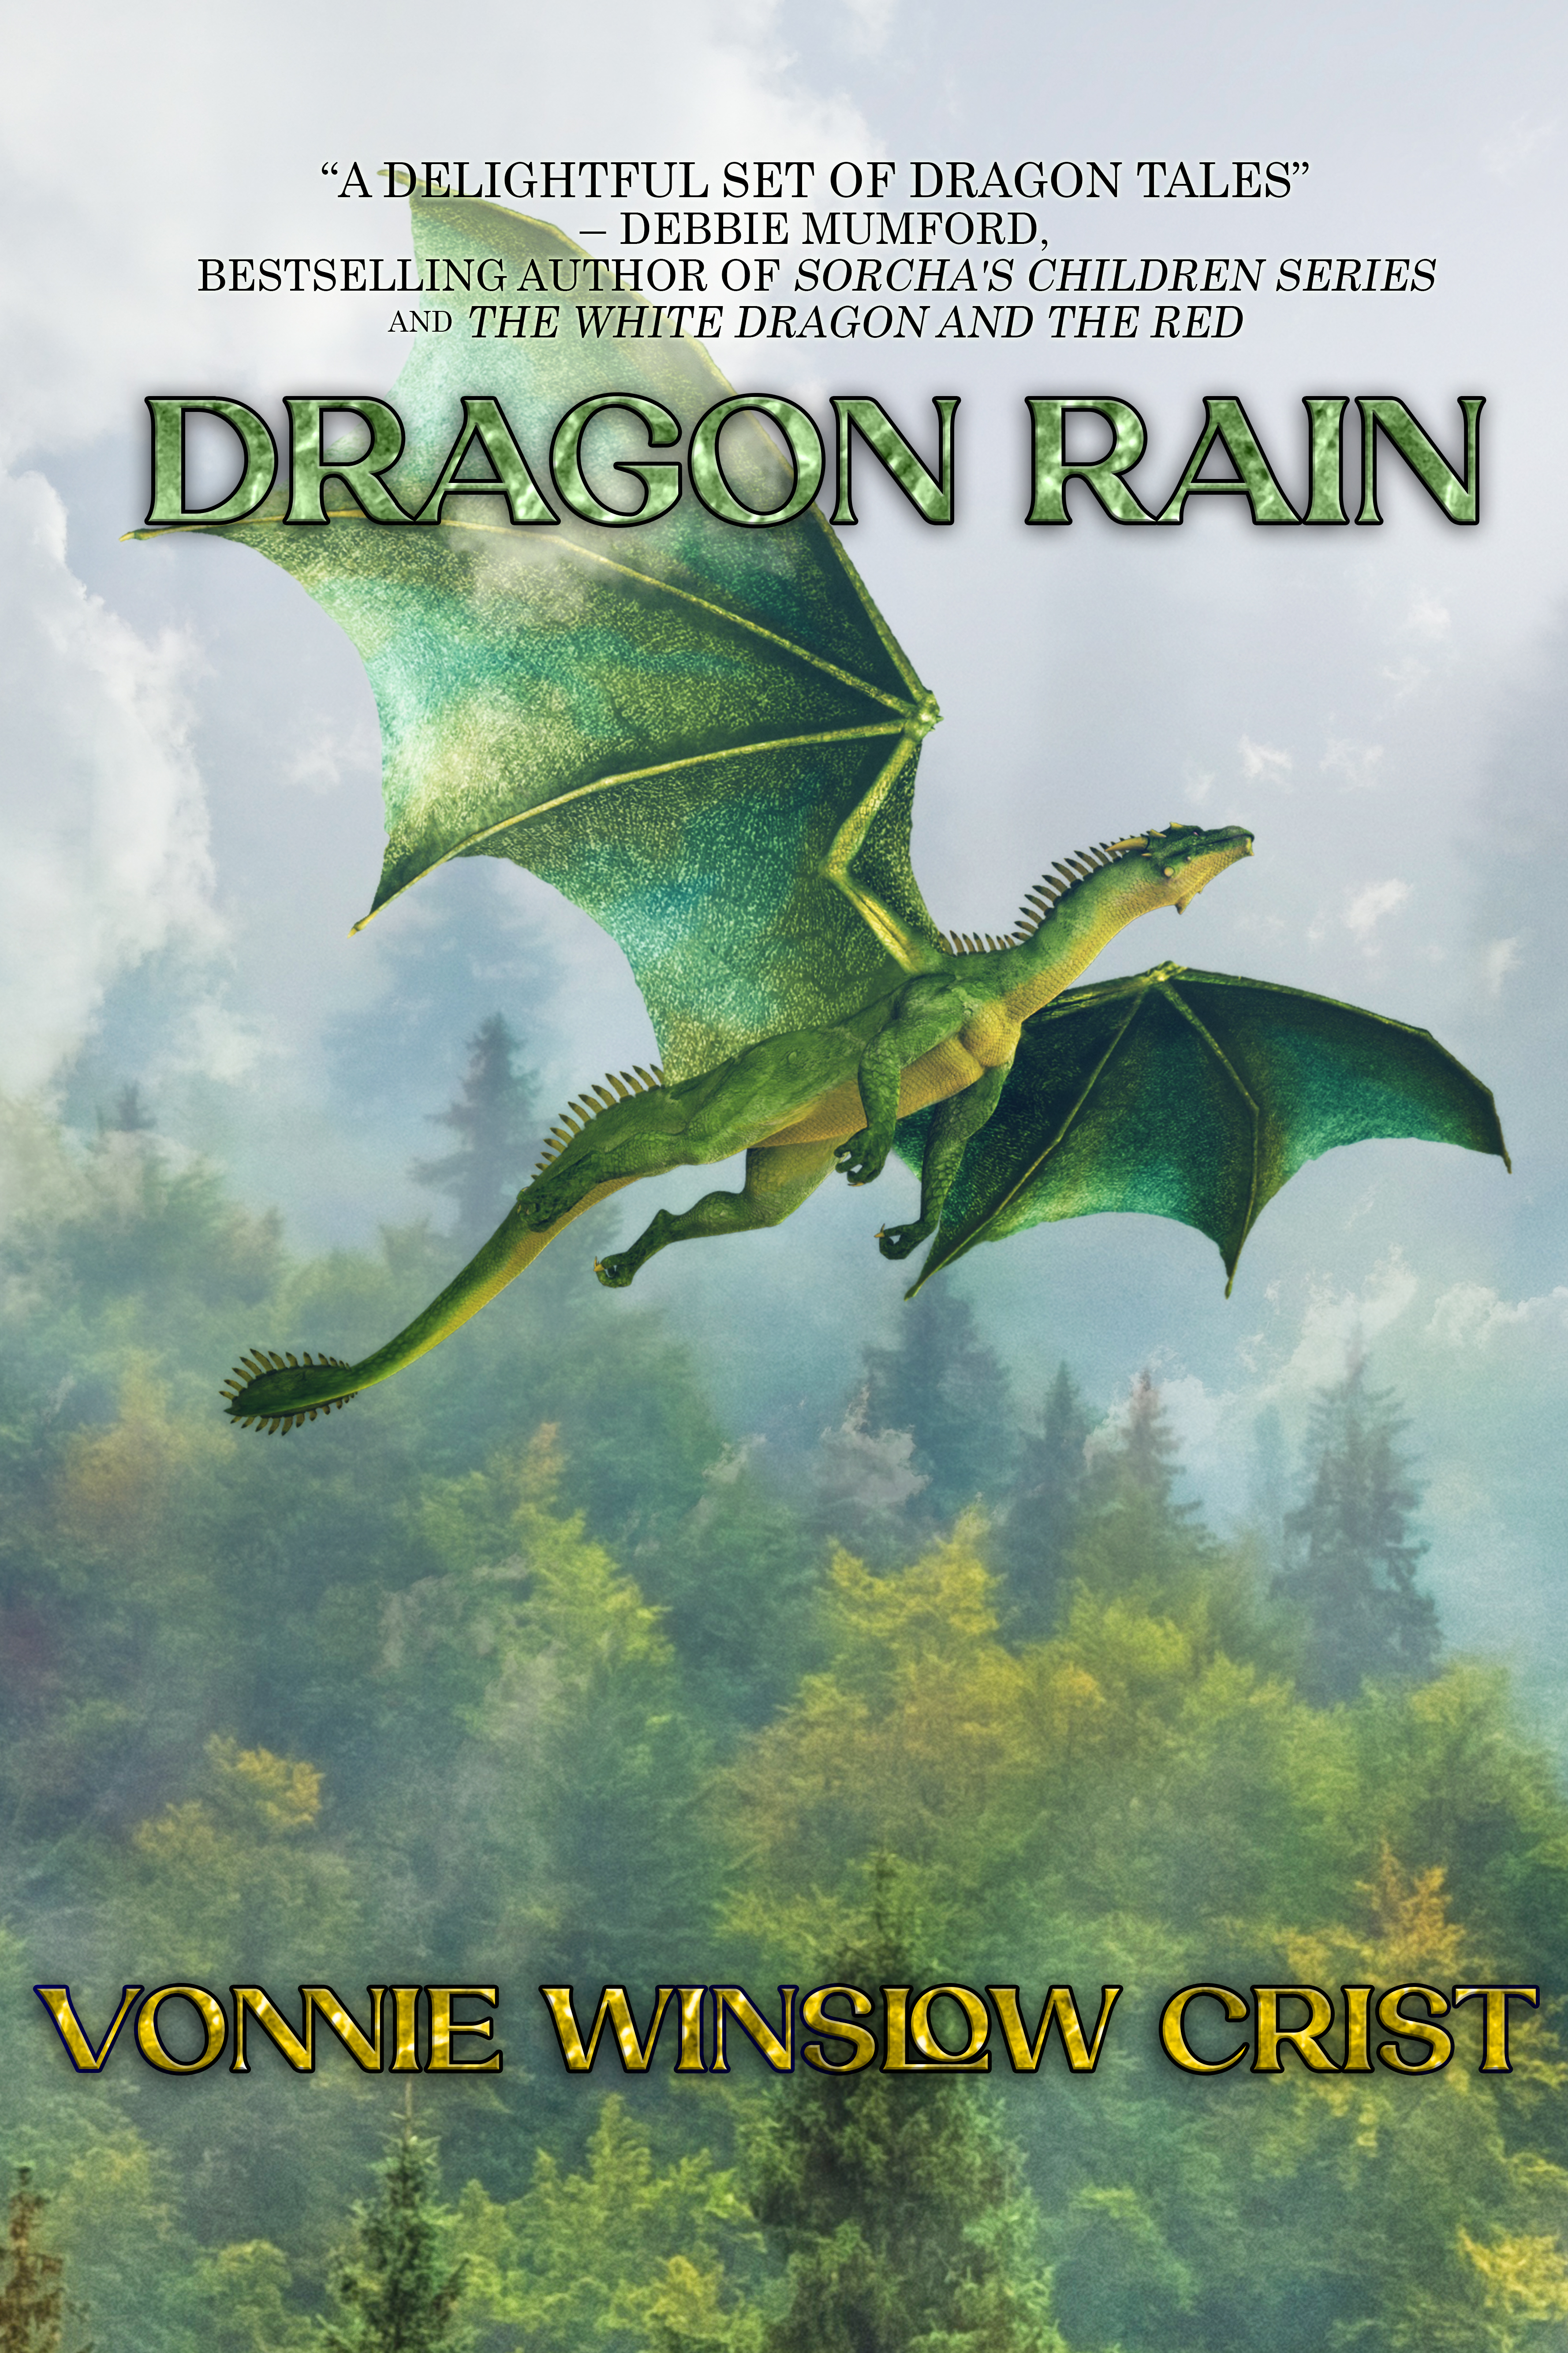 """""""Dragon Rain"""" by Vonnie Winslow Crist is a collection of 18 dragon stories."""